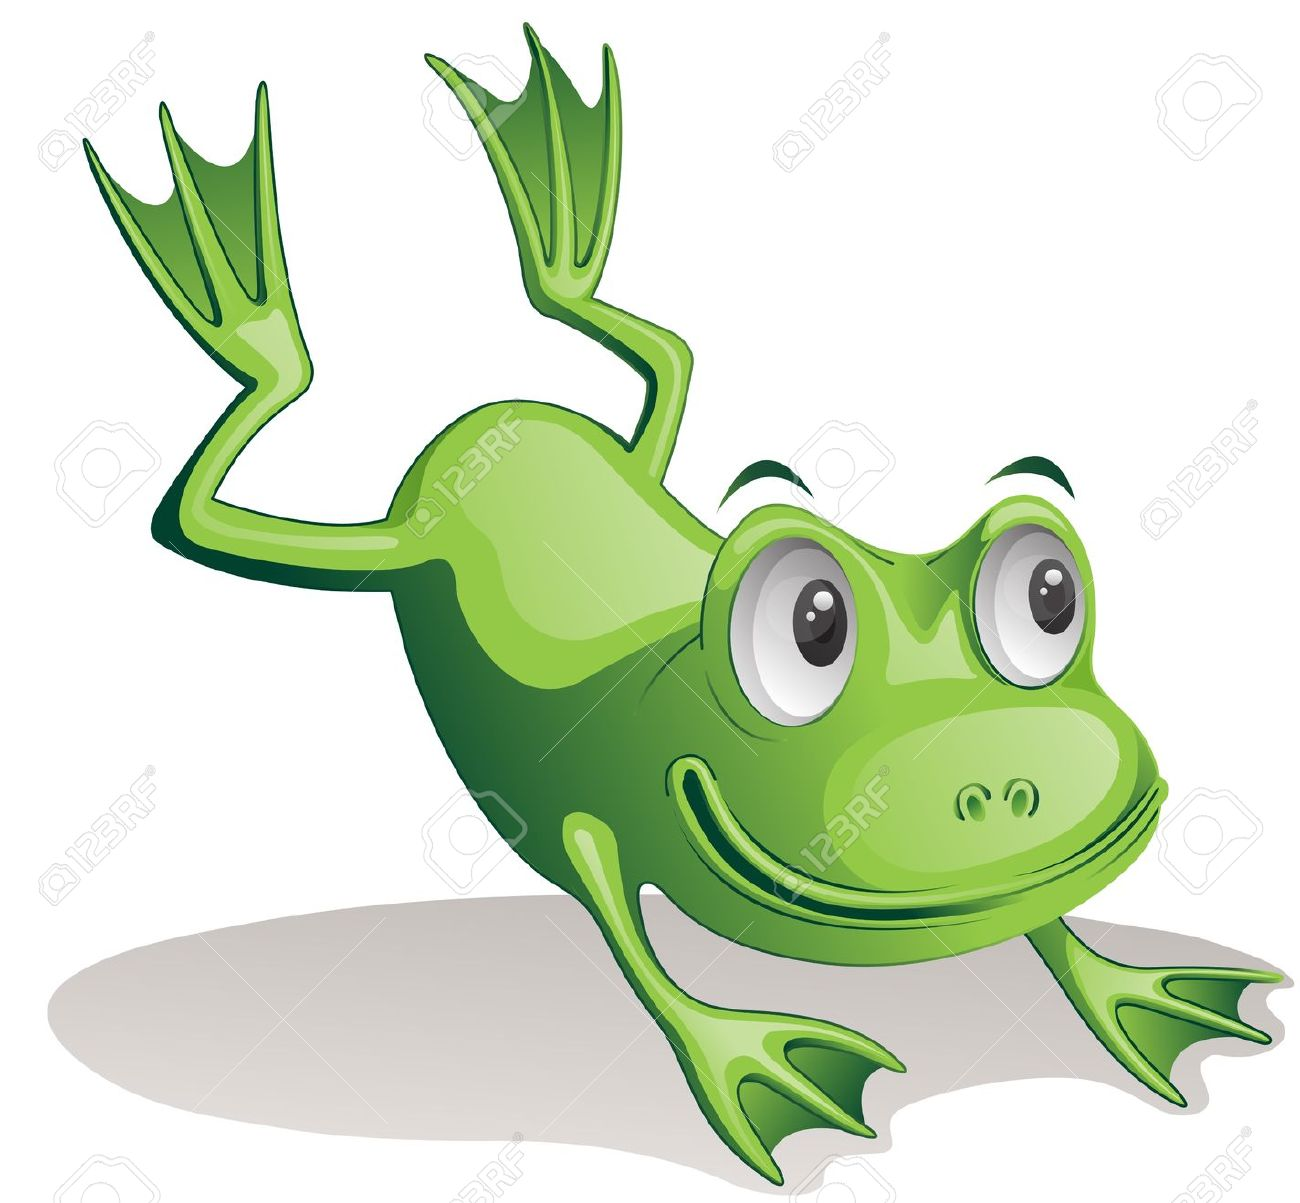 Frog Jumping Cliparts | Free download on ClipArtMag